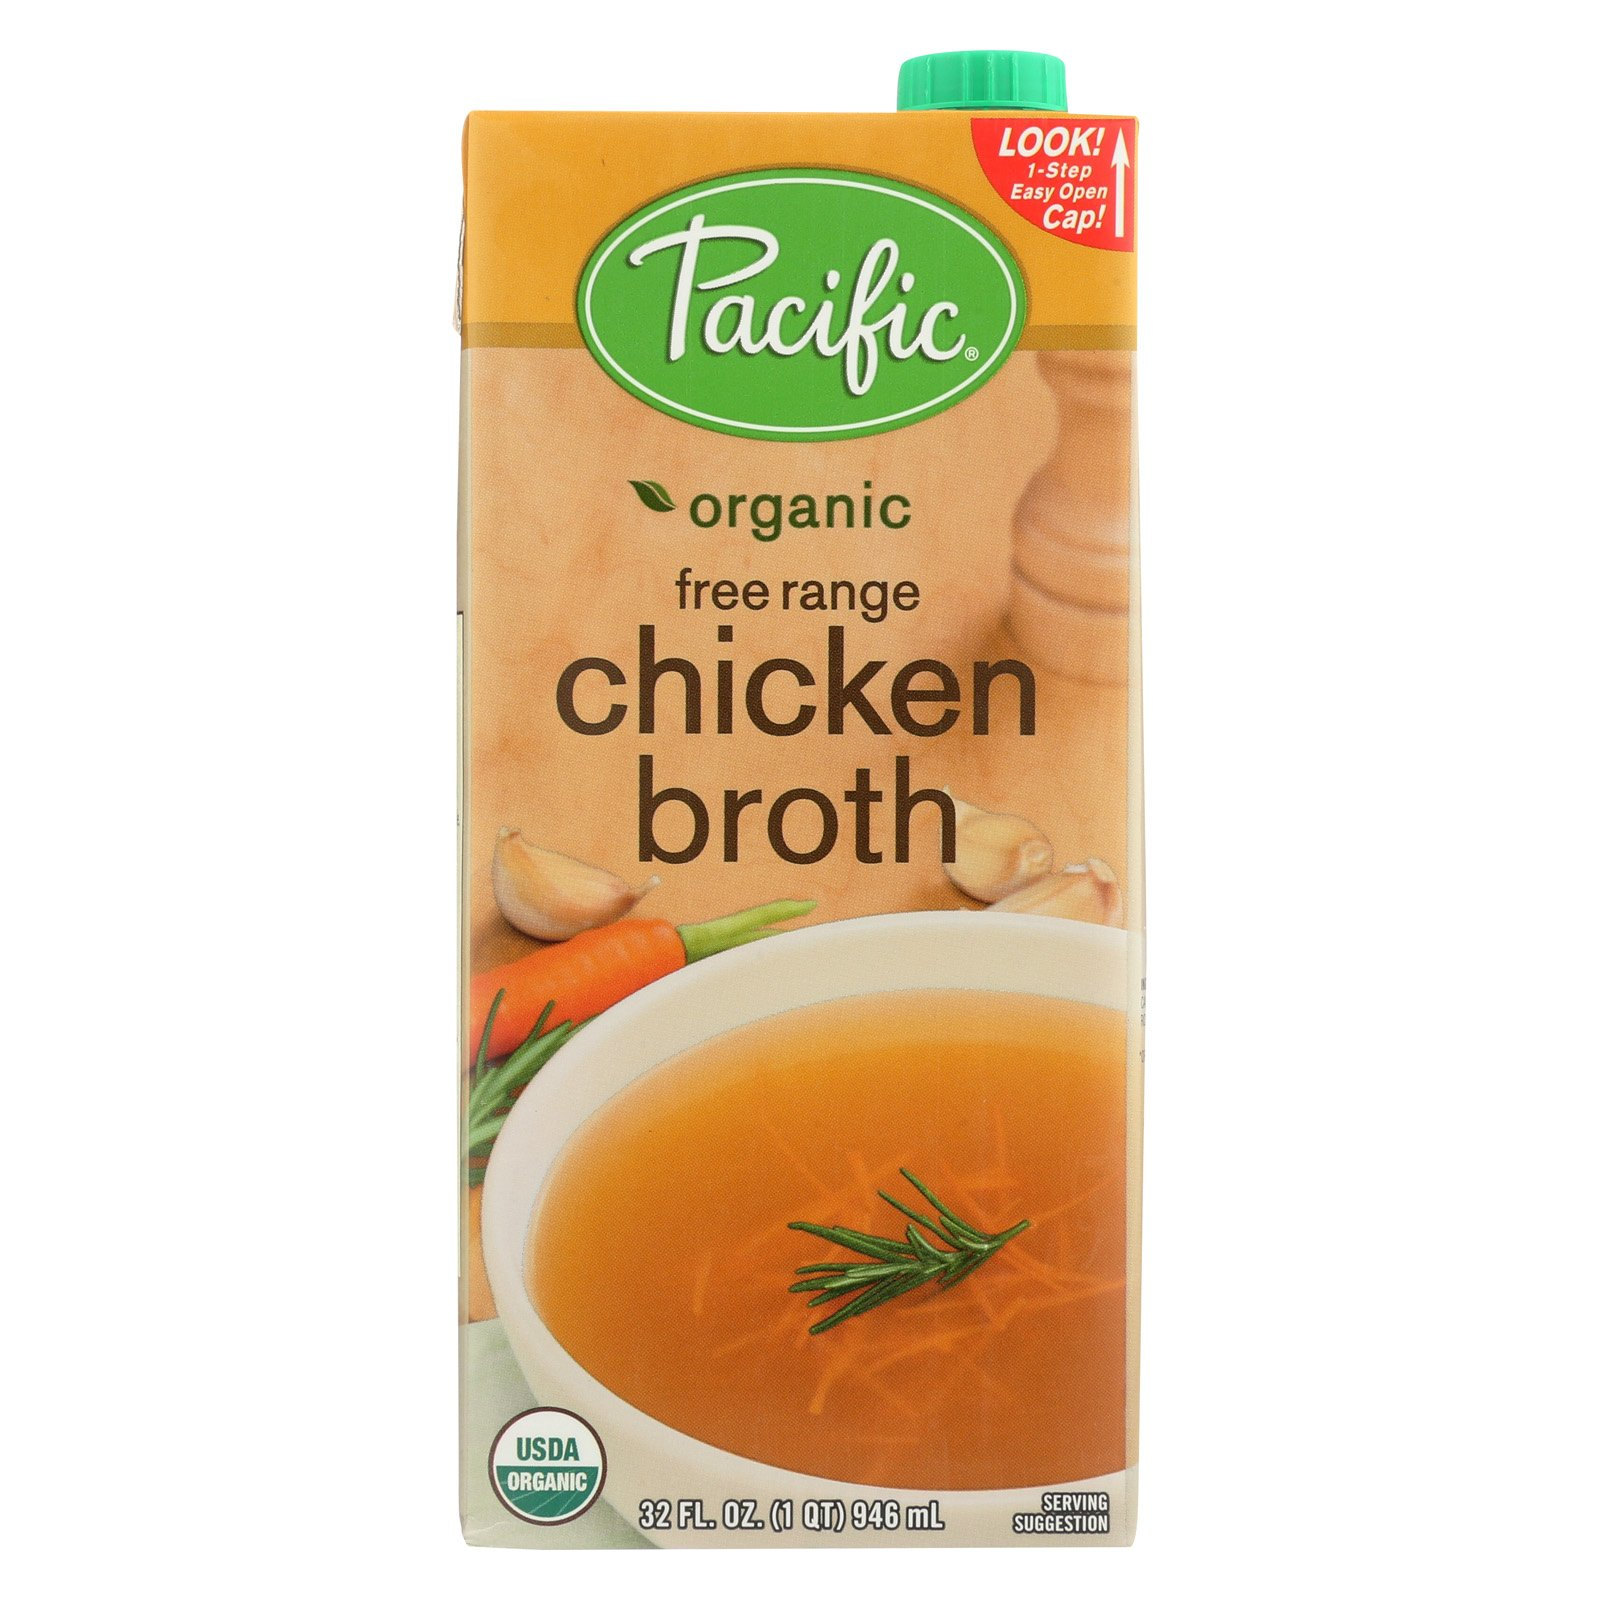 Pacific Natural Foods Chicken Broth - Free Range - Case of 12 - 32 Fl oz. by Pacific Natural Foods